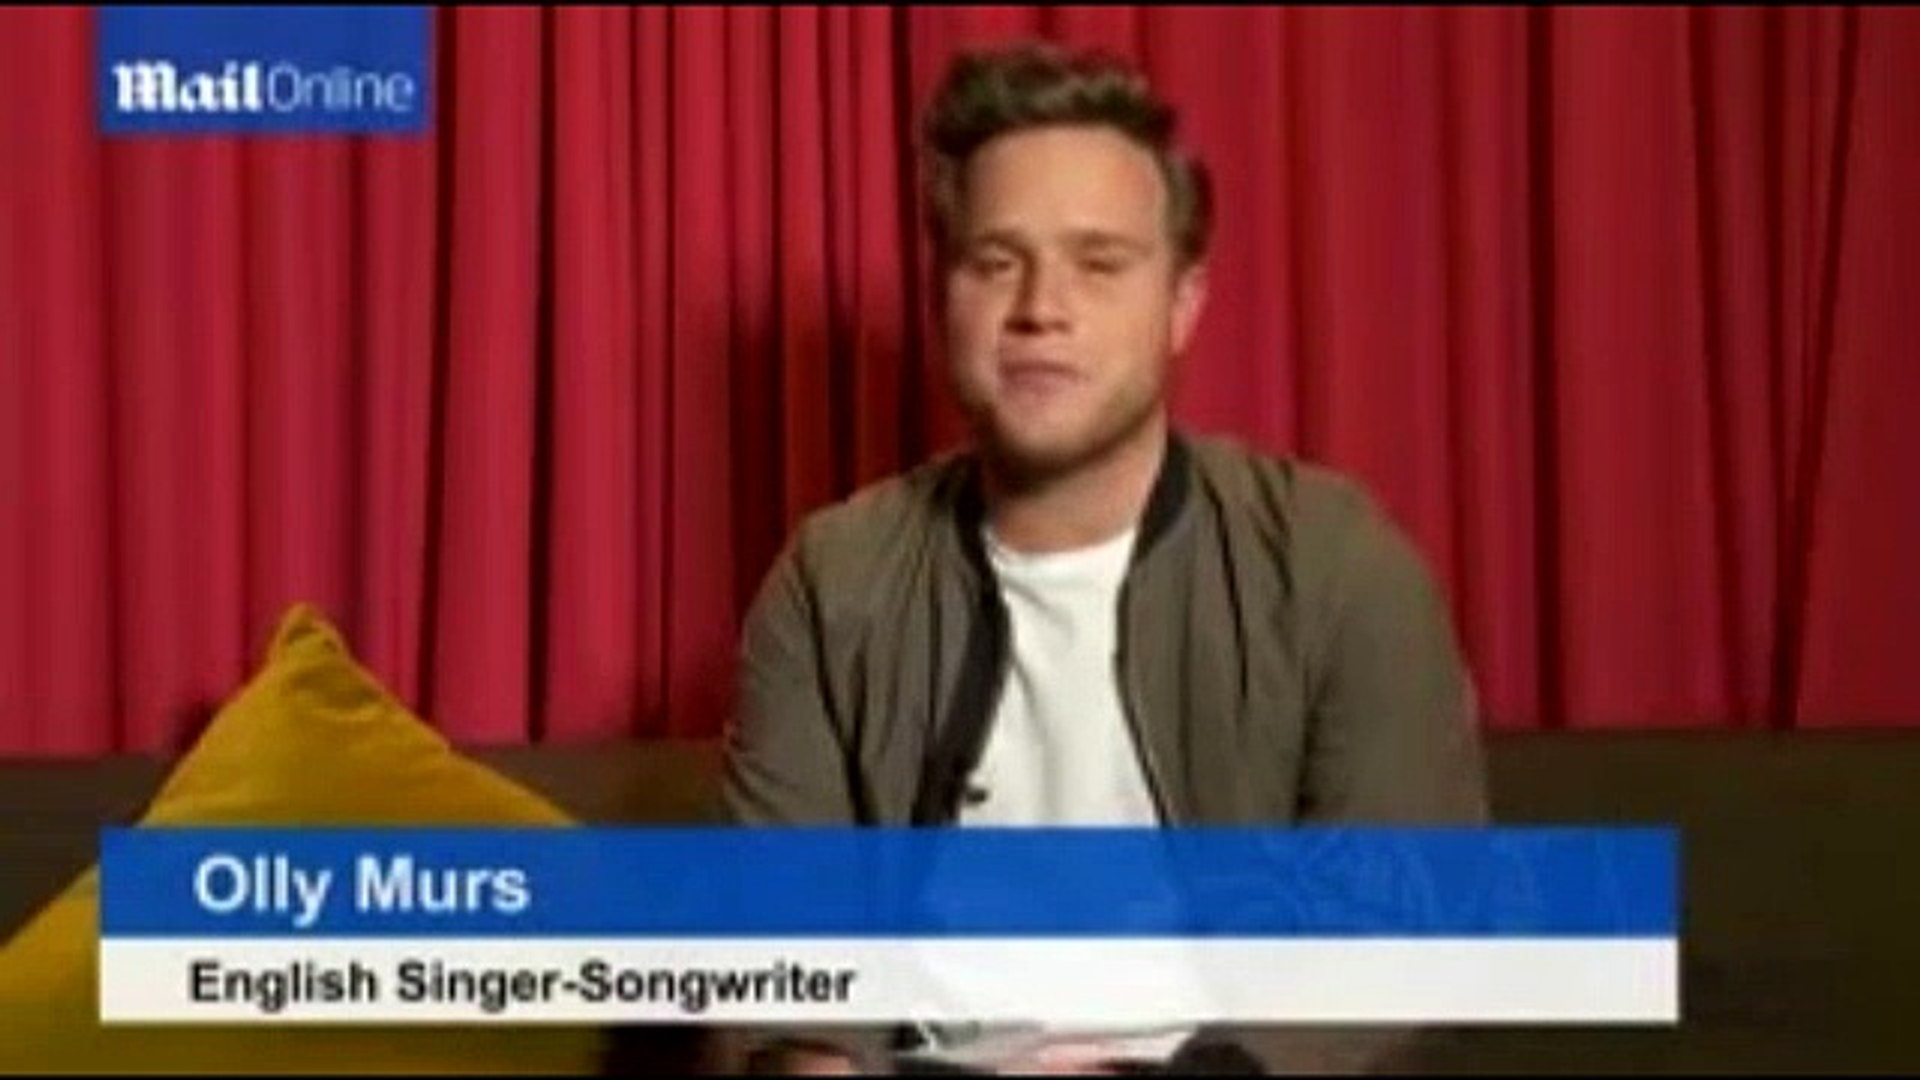 Olly Murs says sorry to Taylor Swift over songwriting comments